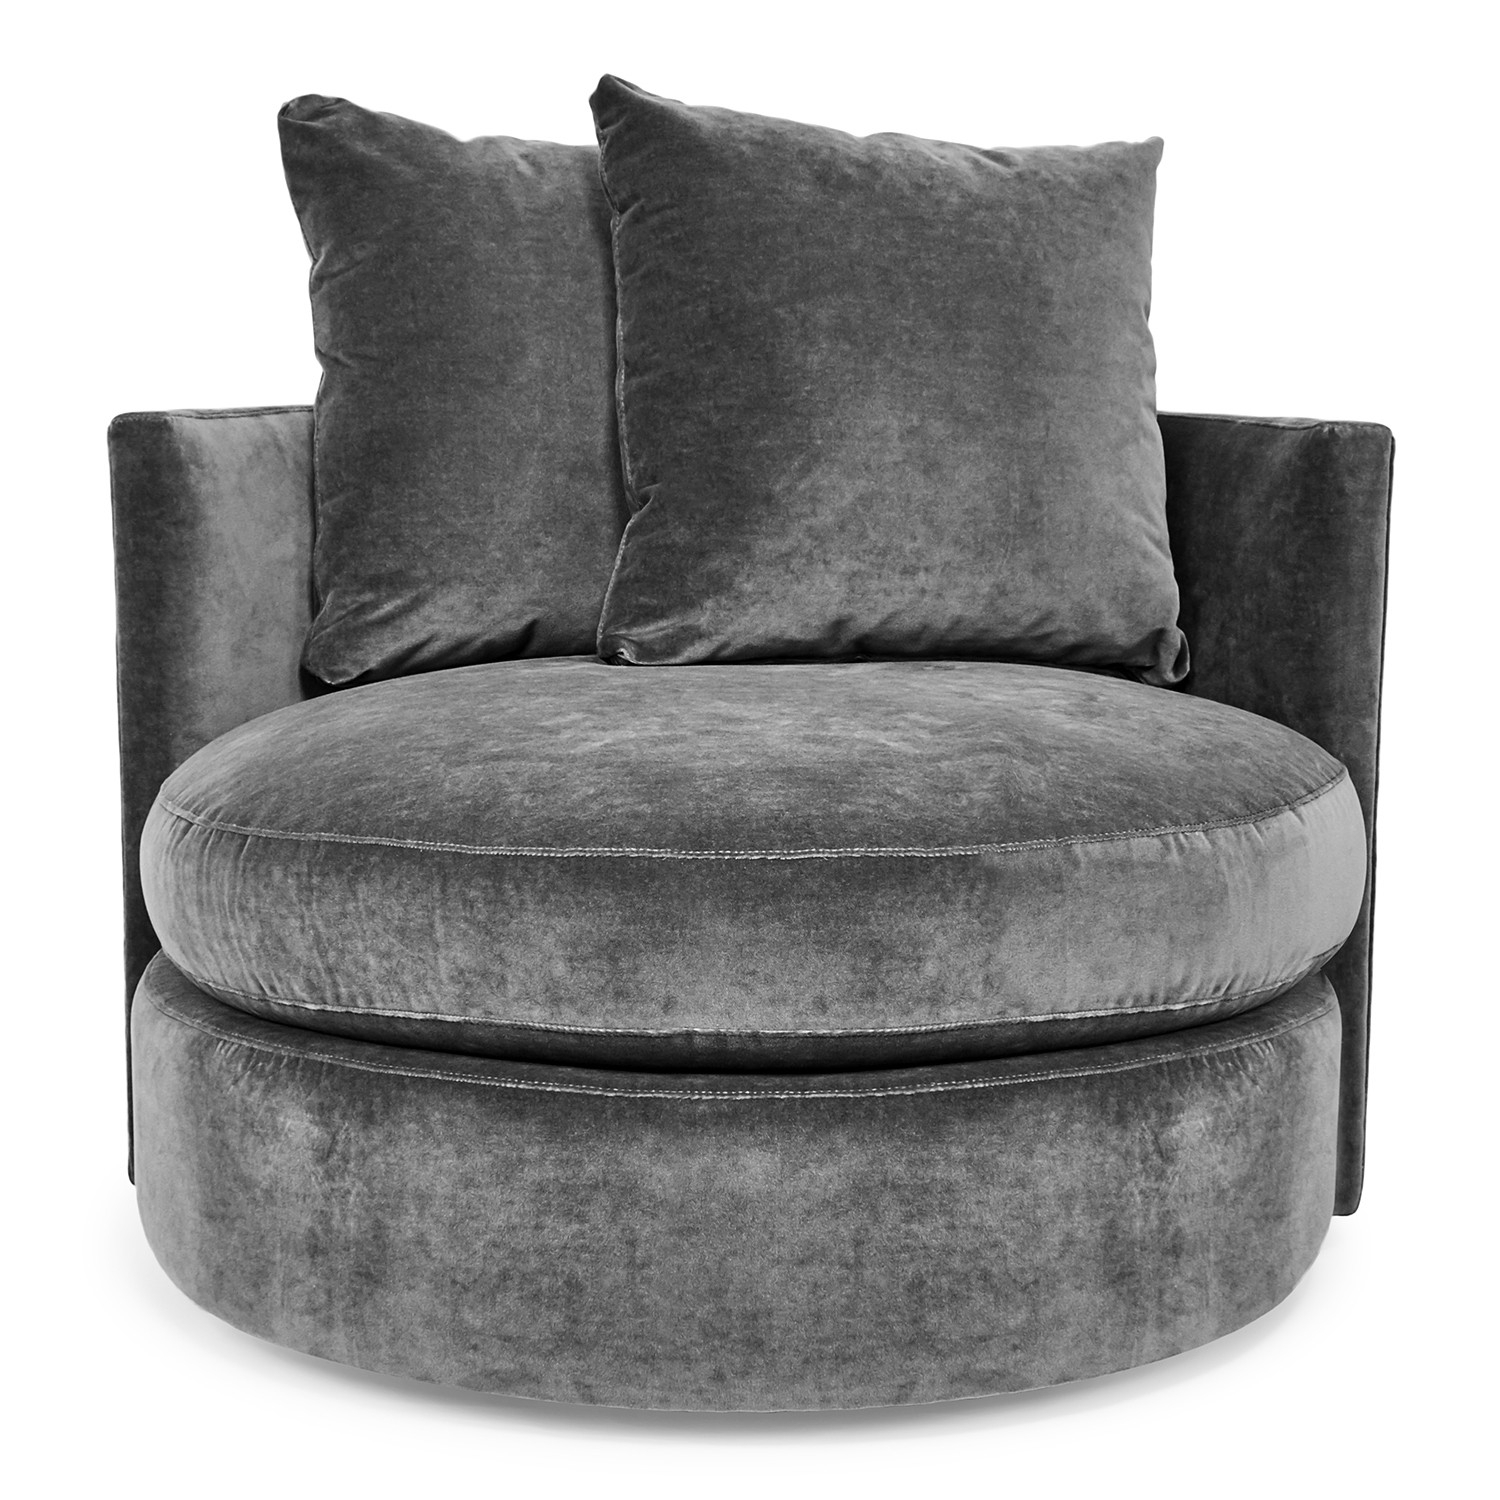 Swivel Accent Chairs At Abc Home & Carpet Within Umber Grey Swivel Accent Chairs (Image 20 of 20)